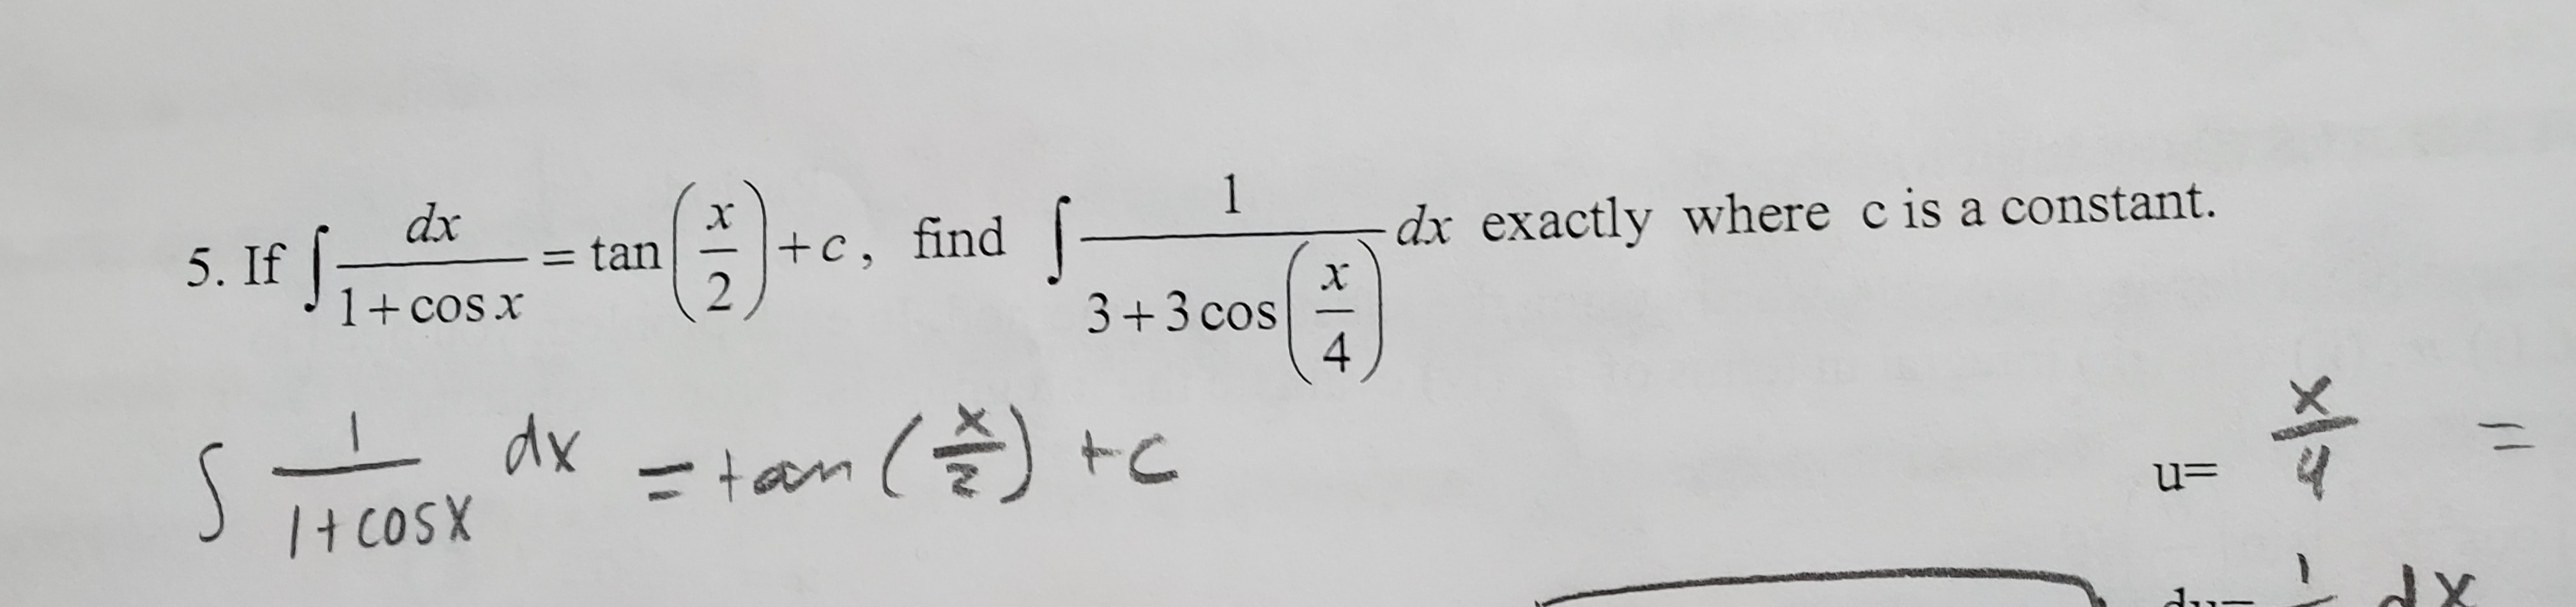 1 dx x +c, find- dx exactly where c is a constant. 5. If 1+cos x = tan 2 X 3+3 cos 4 n dx tam S c /+ CoSX